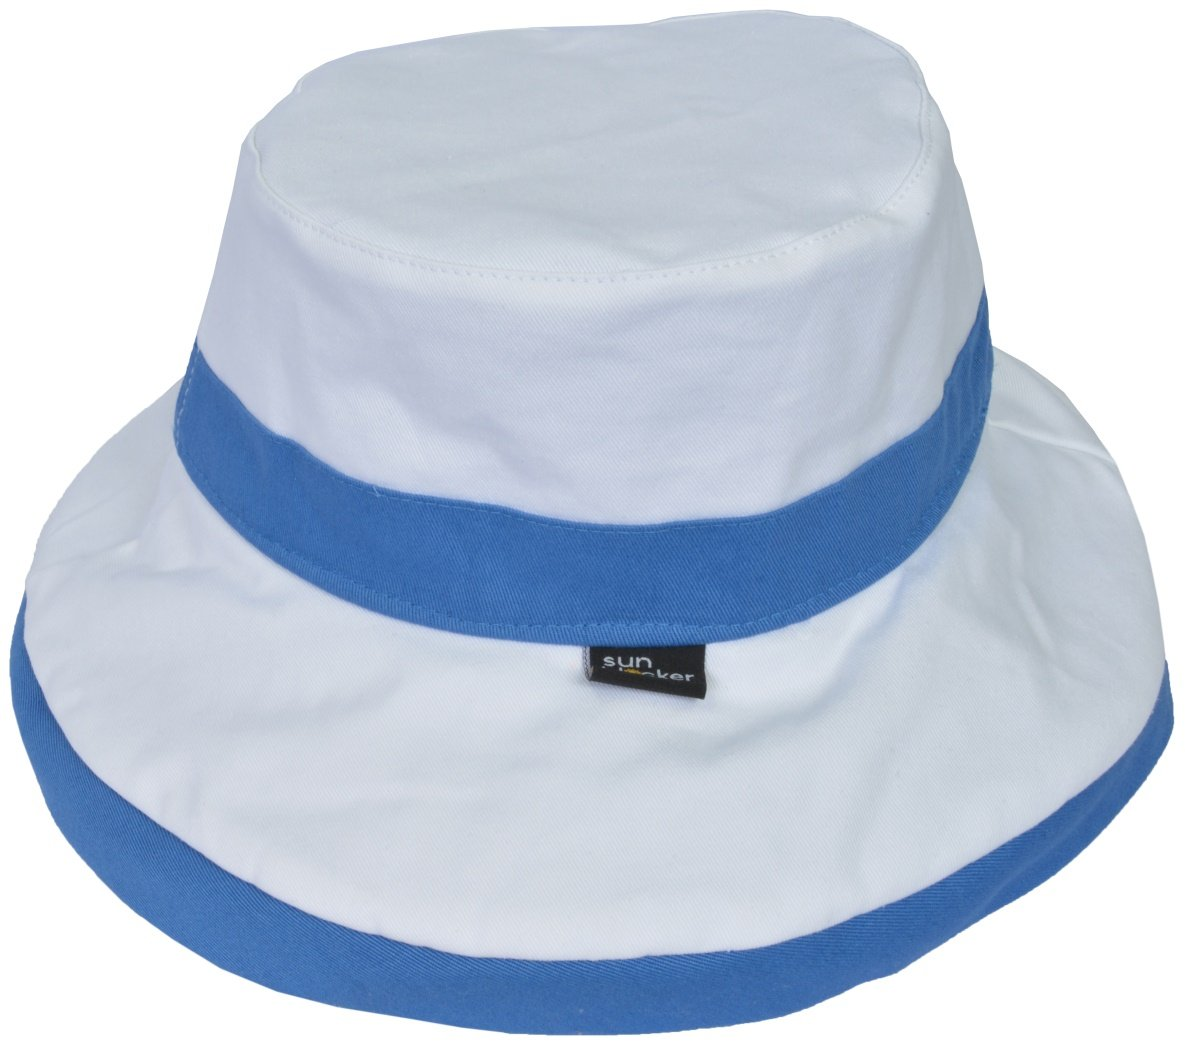 Women\'s Sun Hat Reversible Bucket Cap UPF 50+ Outdoor Travel Beach Hat Blue